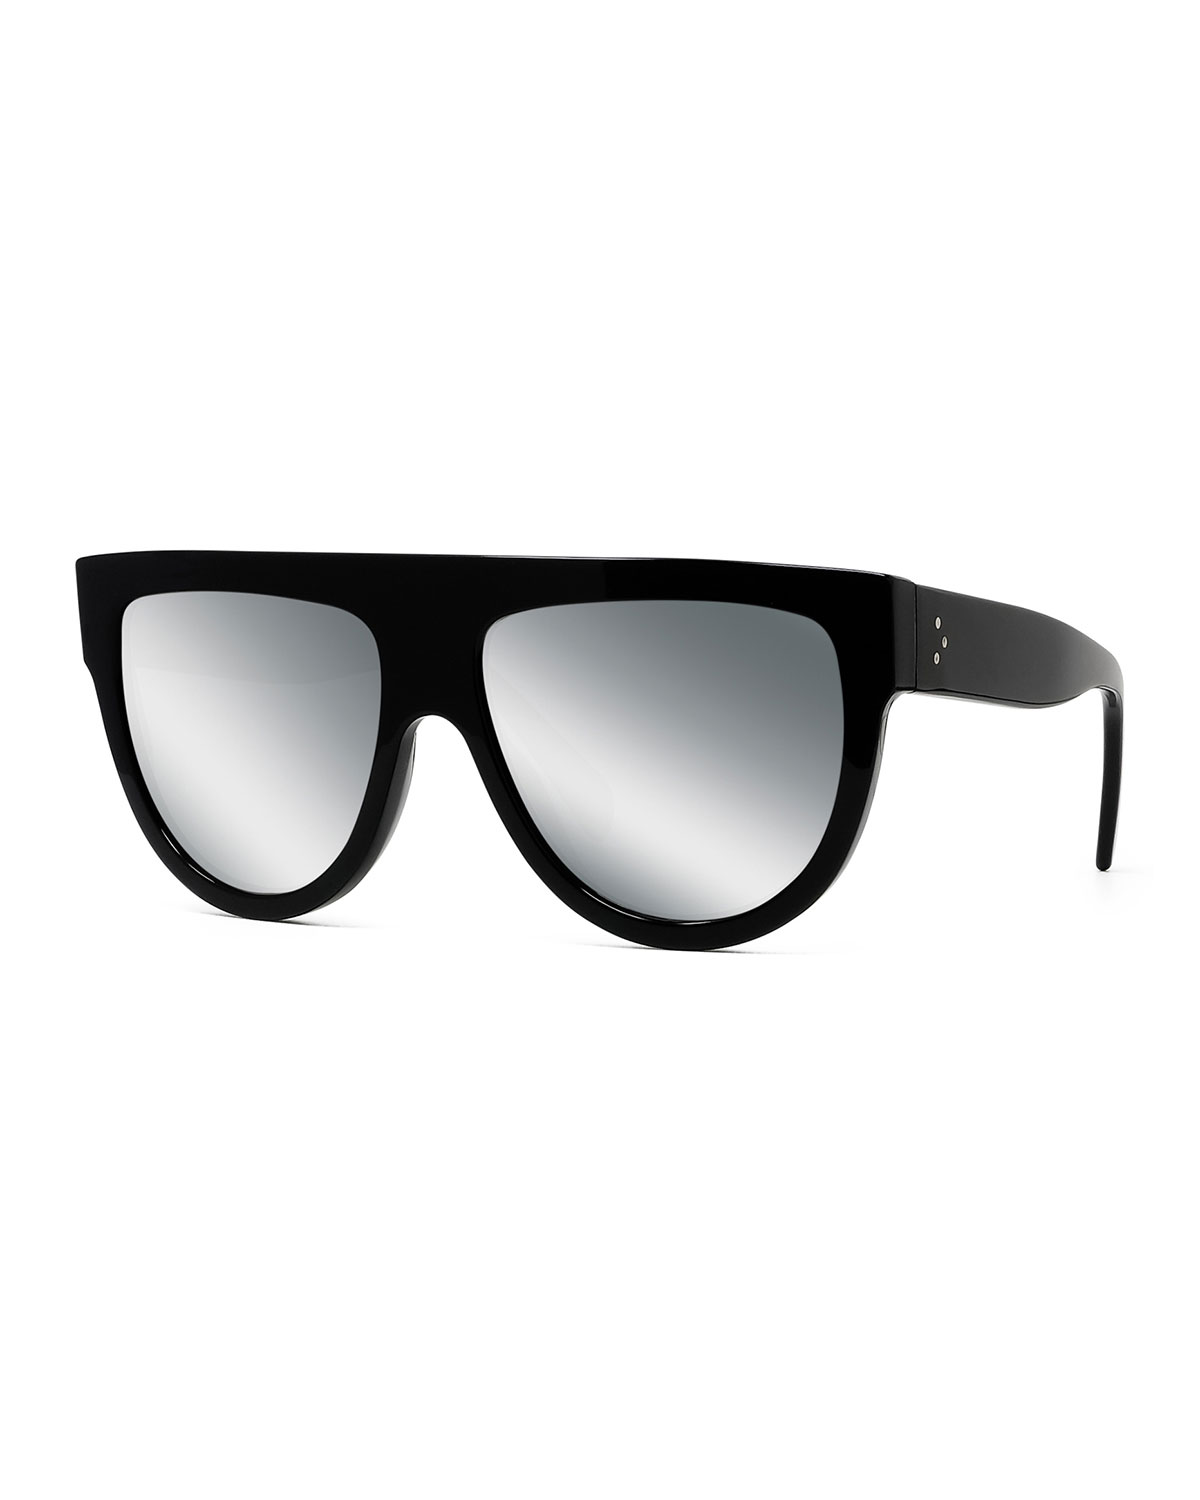 0bde76b6b02 Celine Flattop Gradient Shield Sunglasses